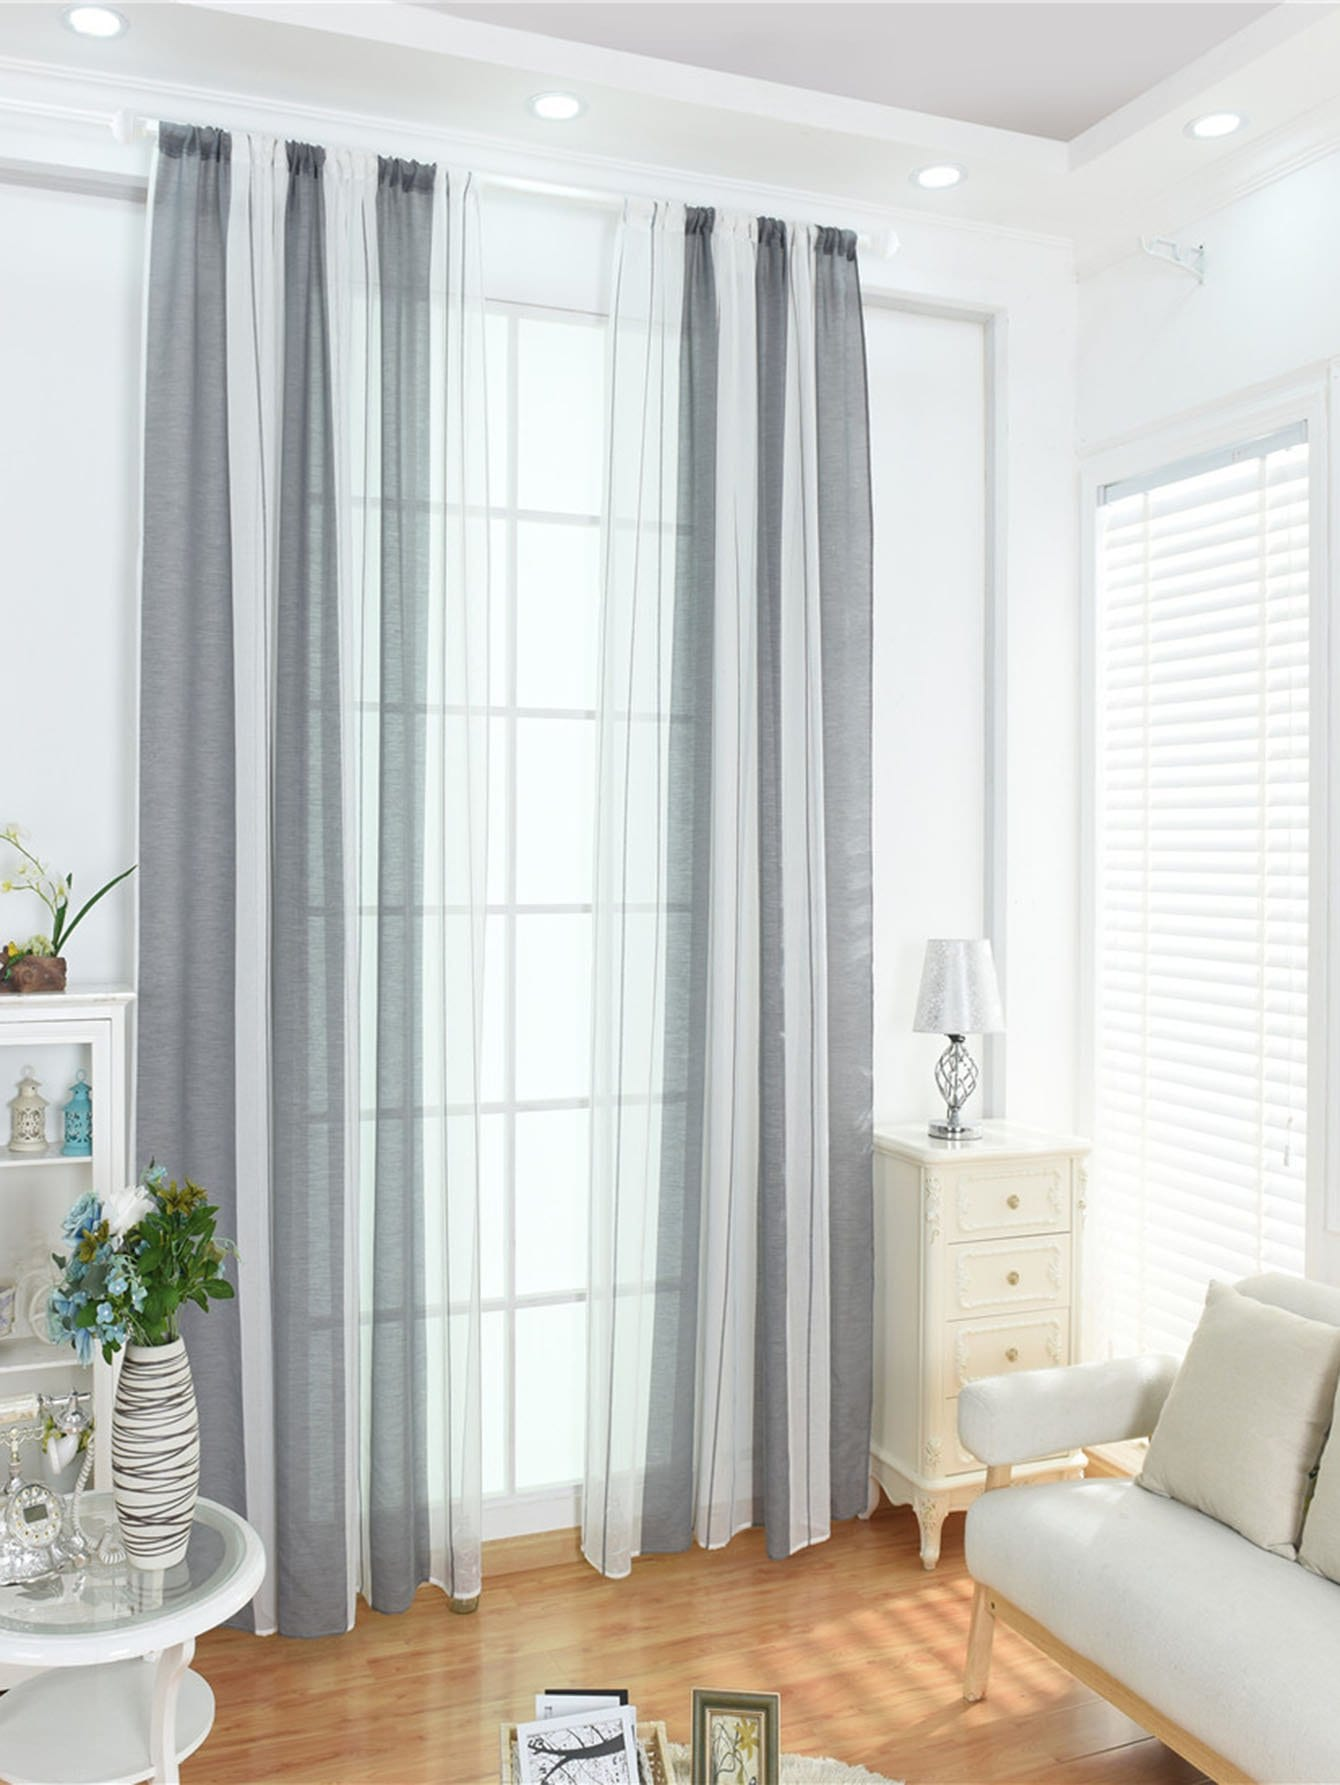 Two Tone Rod Pocket Sheer Curtain 1pc floral print rod pocket sheer curtain 1pc